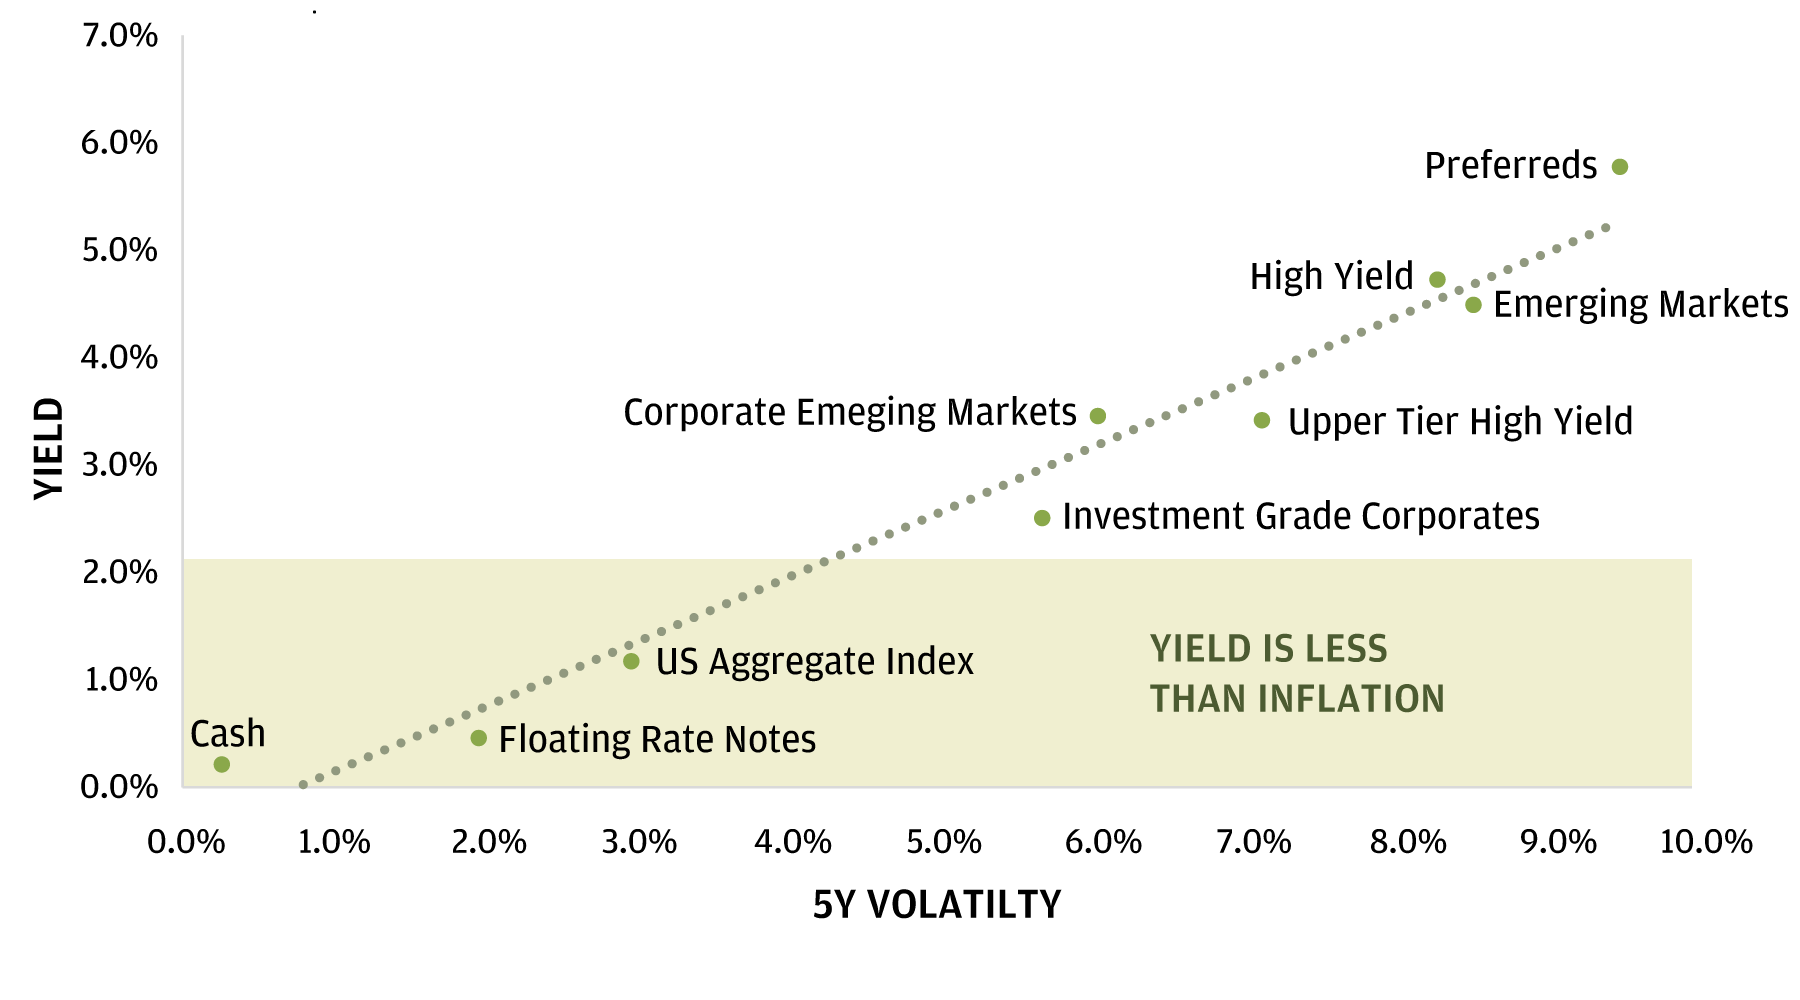 Chart shows different investment options to find yield, with yield on the vertical axis and volatility/risk tolerance on the horizontal one. On the bottom left there are options such as Deposit Solutions and FRN's, which are examples of low risk investments with short time horizons, while on the top right, there are High Yield and Preferreds, examples of higher risk investments with longer time horizons. All the solutions in the grey box generate a yield below inflation target of 2%.